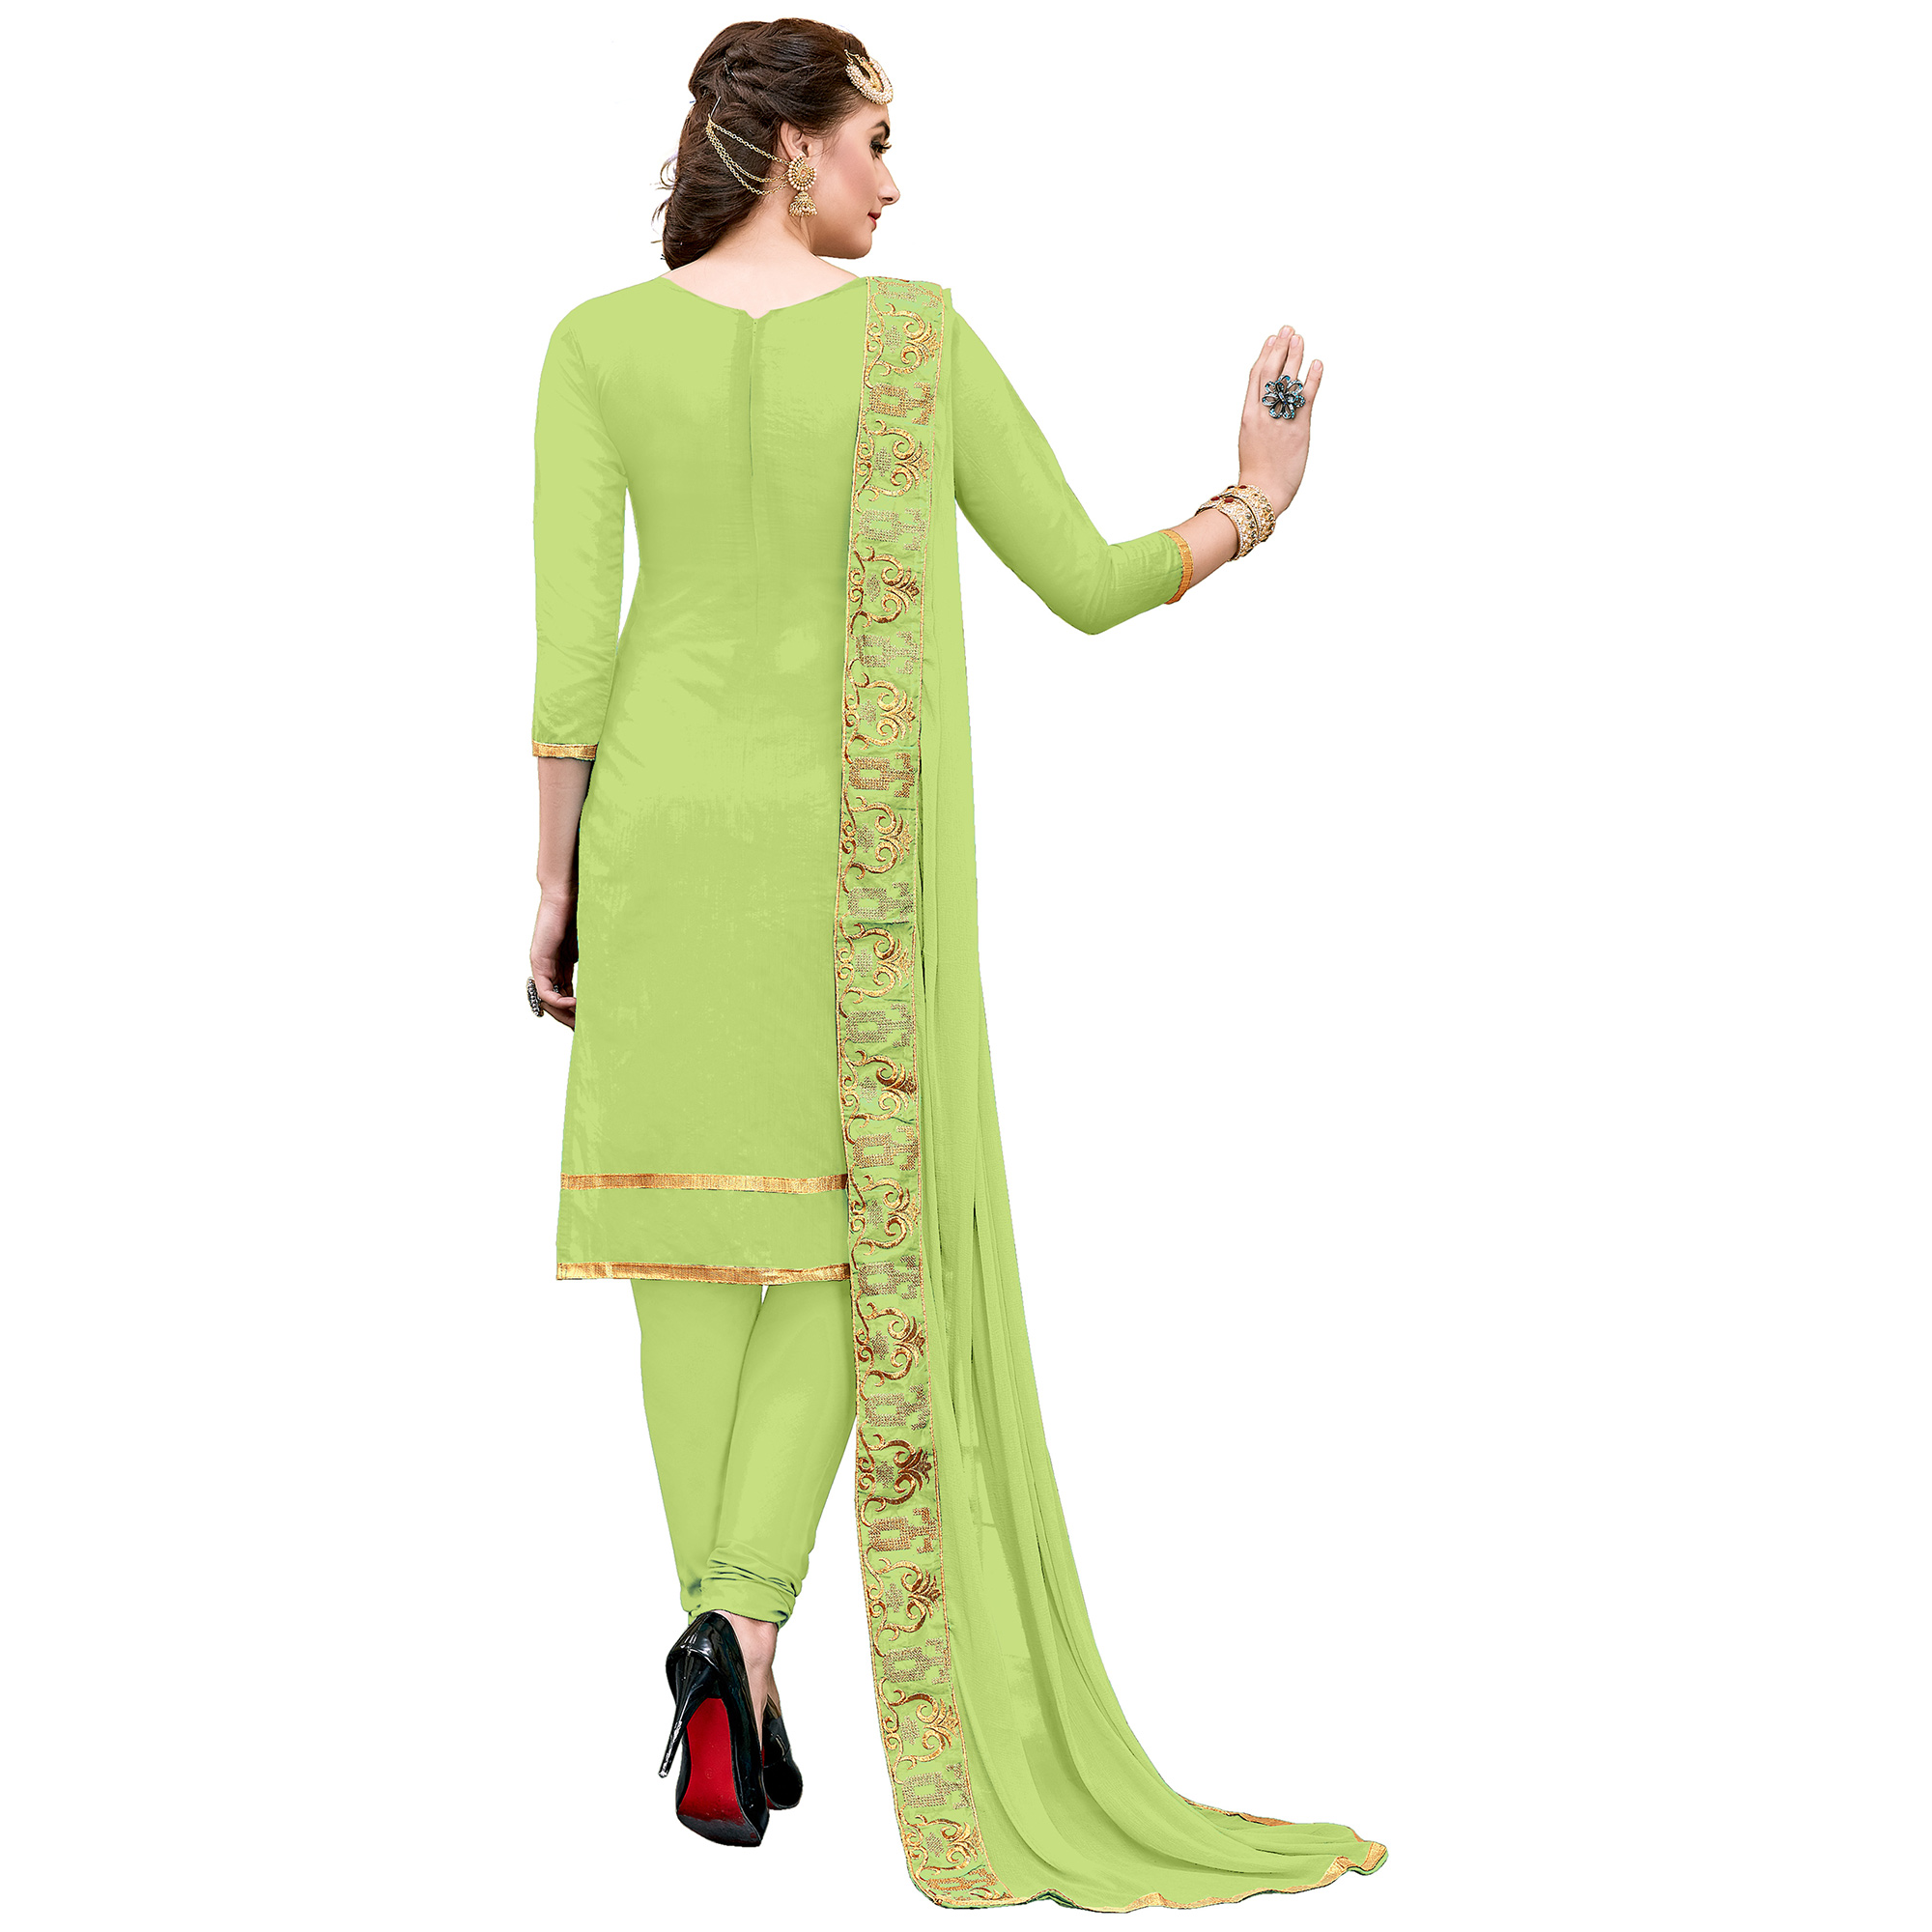 Appealing Light Green Colored Partywear Embroidered Modal Dress Material